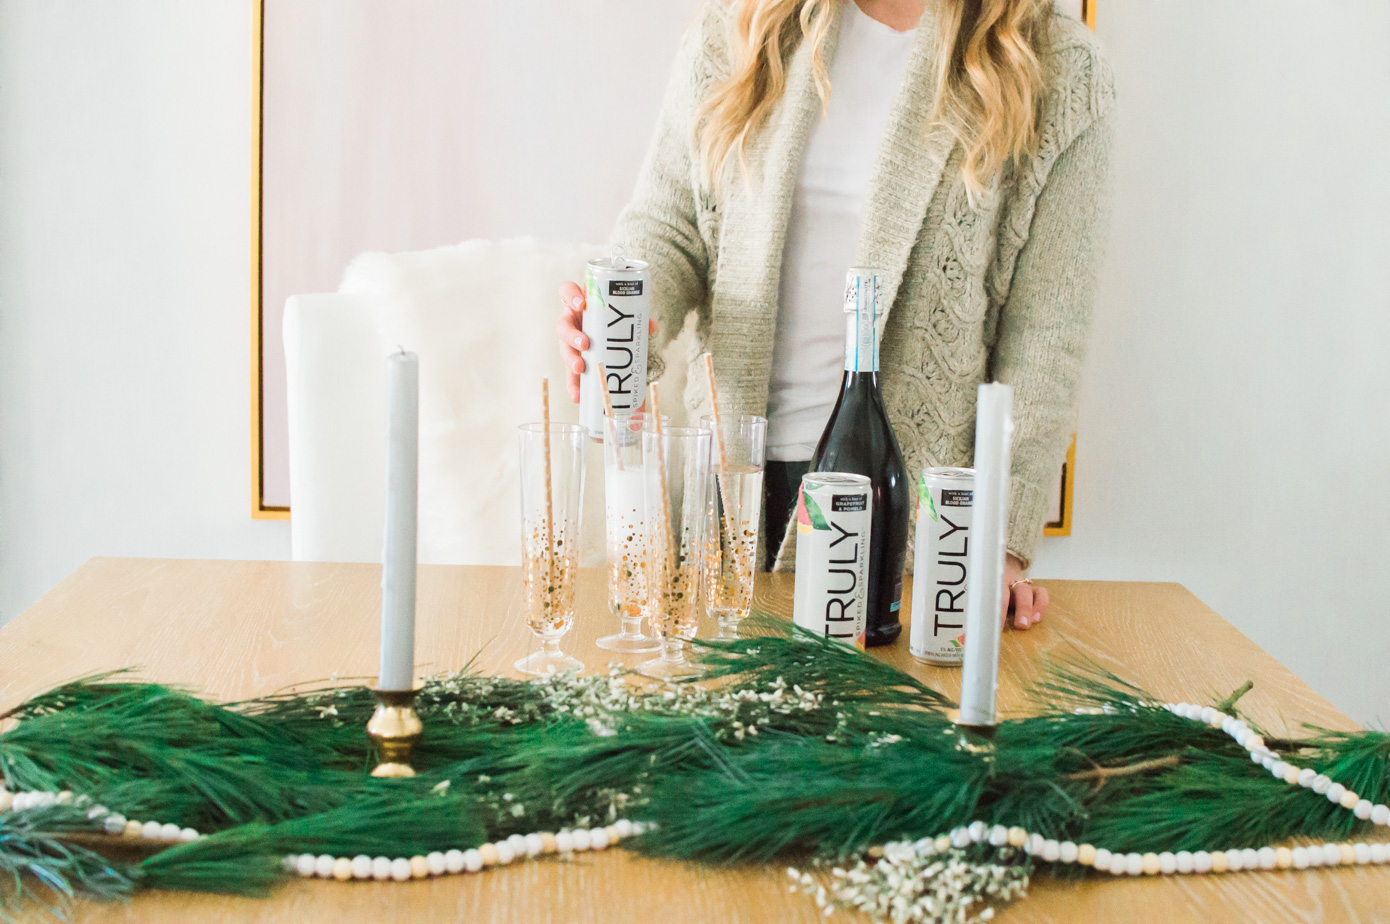 Louella Reese Truly Spiked & Sparkling Cocktail | Holiday Cocktail | Low-Calorie Cocktail | Louella Reese Life & Style Blog